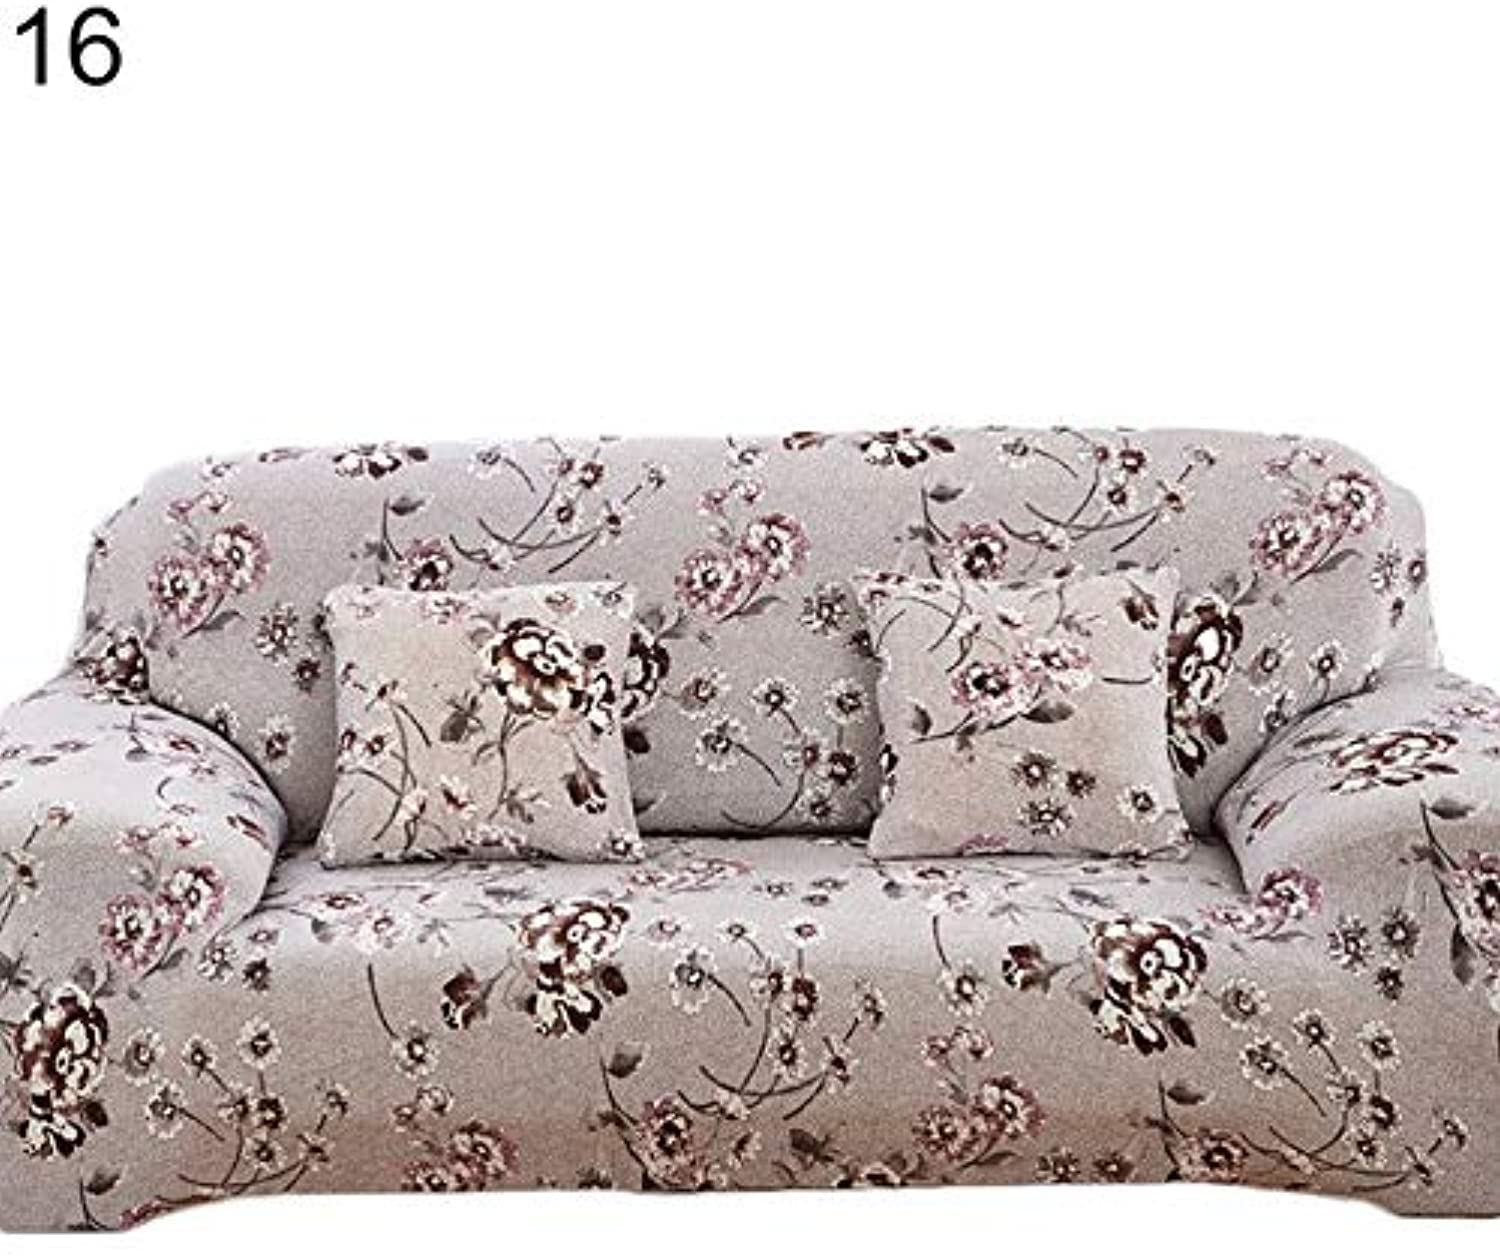 Farmerly Pastoral Stretch Sofa Furniture Cover Case Floral Printed Slipcover Home Decor   16